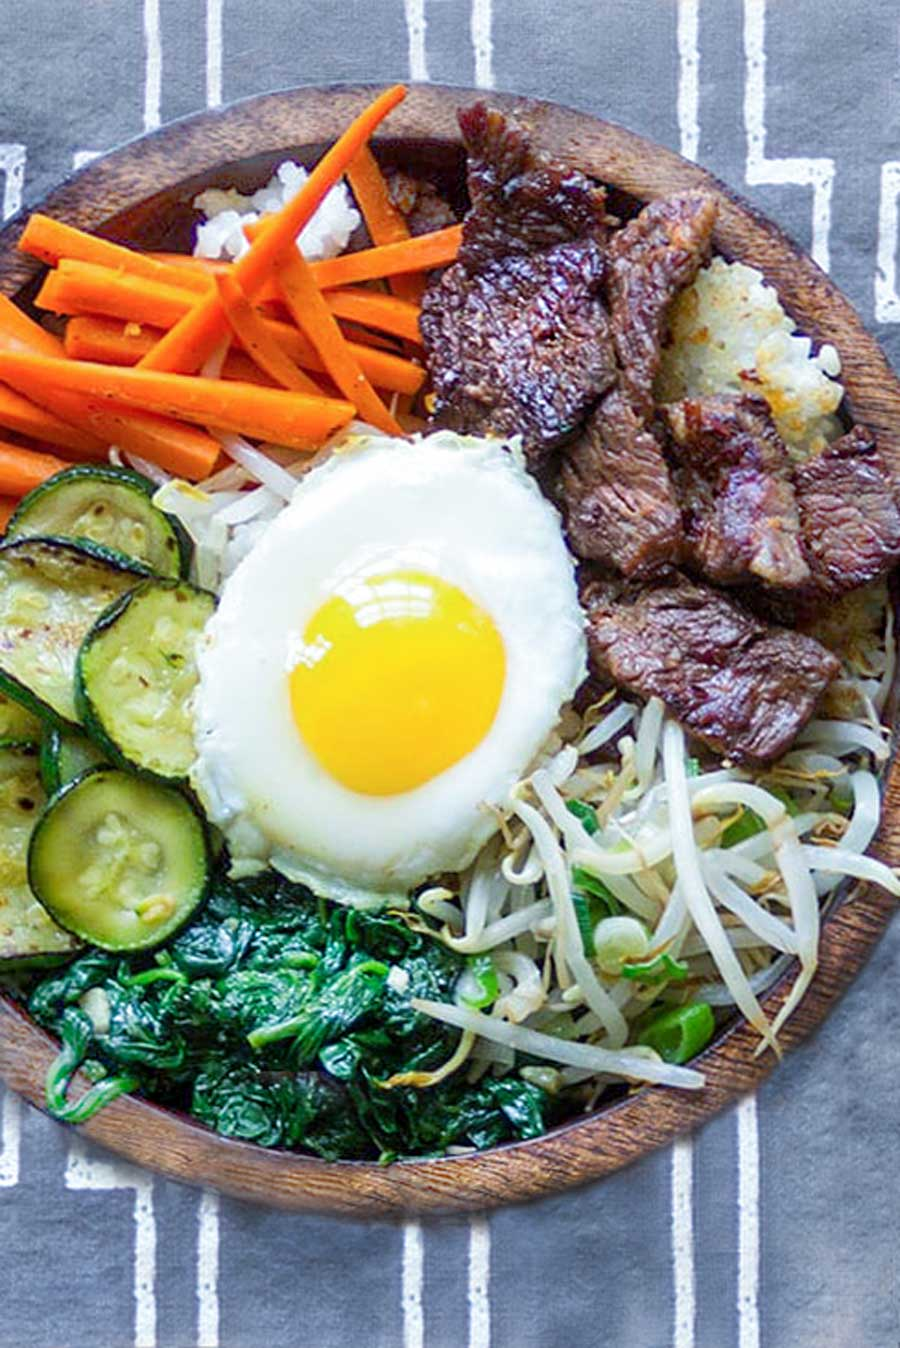 Bibimbap Korean Rice Bowl Of Bulgogi Beef Vegetables And Spicy Sauce Recipe Bulgogi Beef Bibimbap Recipe Bibimbap